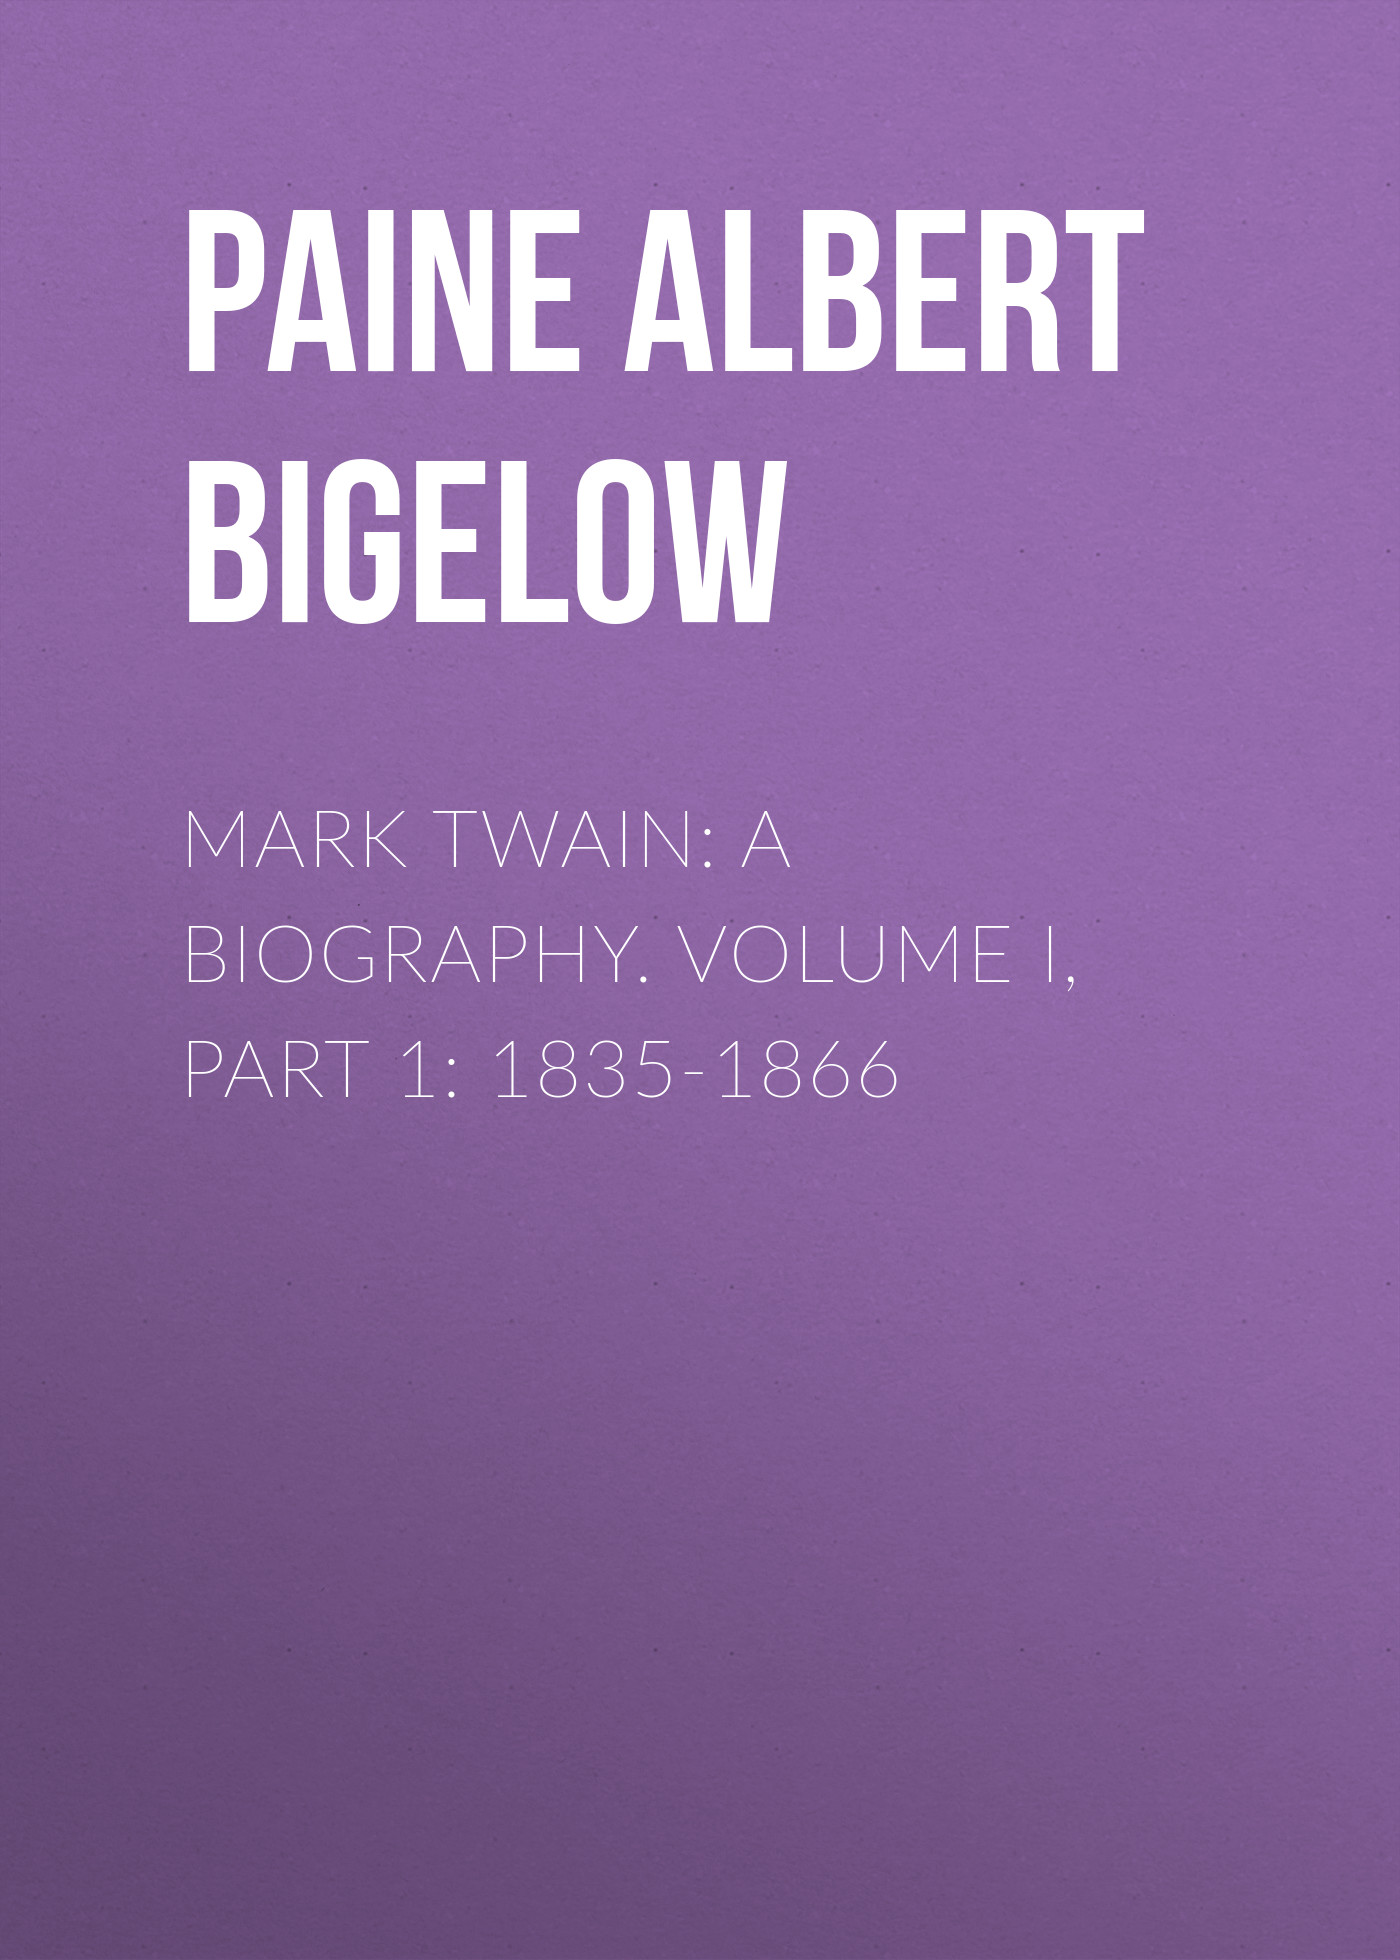 Фото - Paine Albert Bigelow Mark Twain: A Biography. Volume I, Part 1: 1835-1866 paine albert bigelow mark twain a biography volume ii part 1 1886 1900